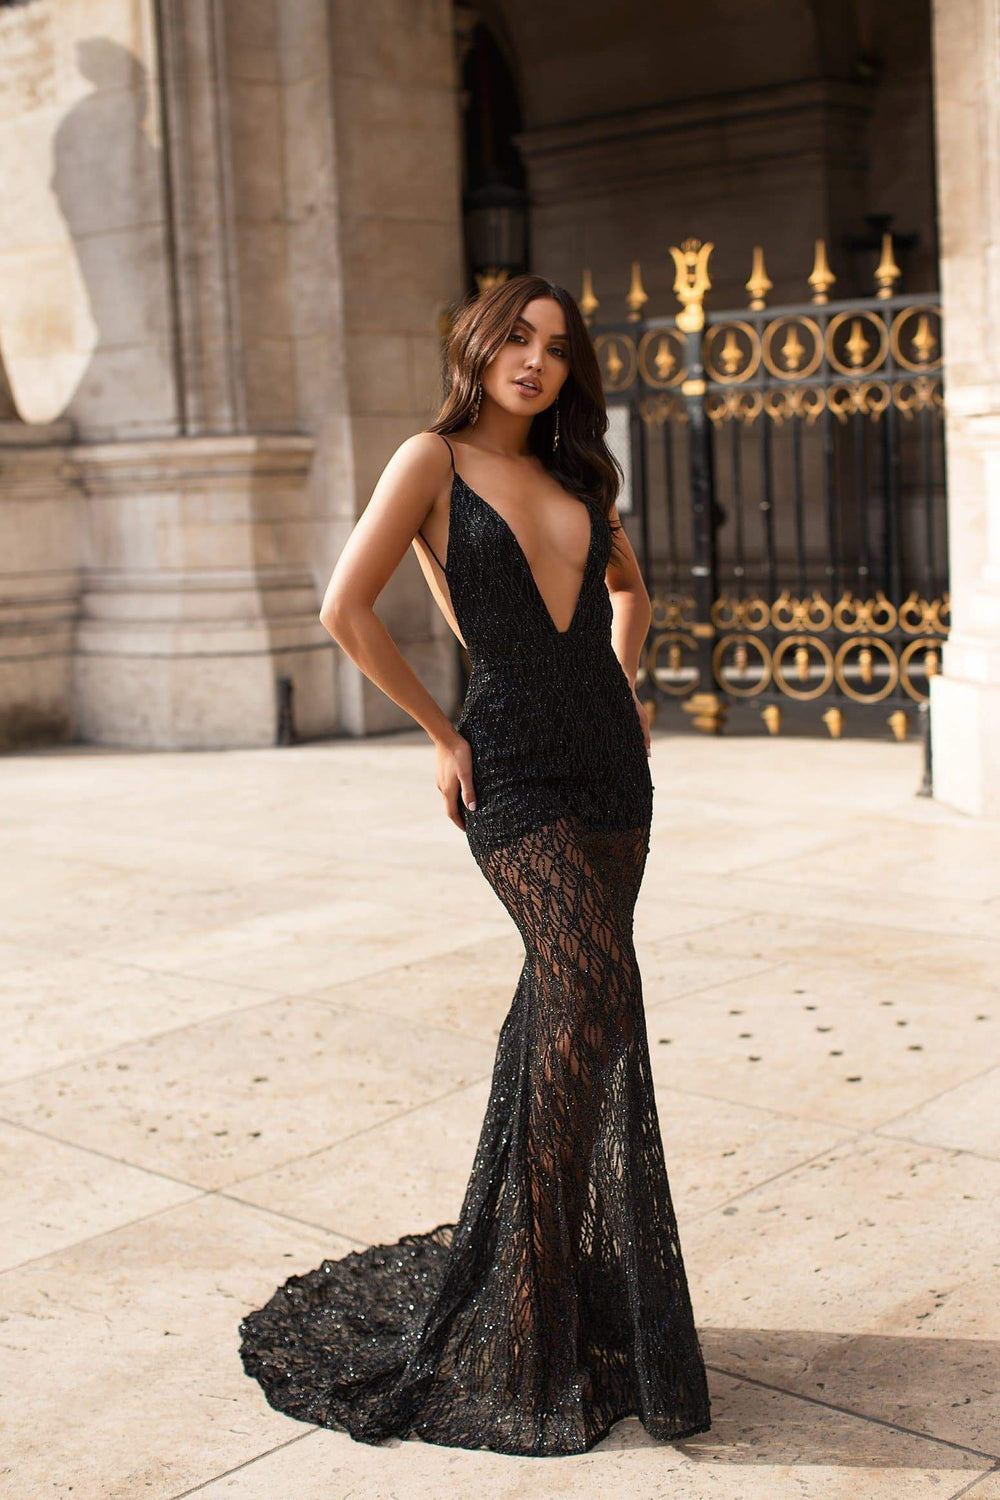 Joella - Black Sheer Glitter Gown with Deep Plunge Neckline & Low Back